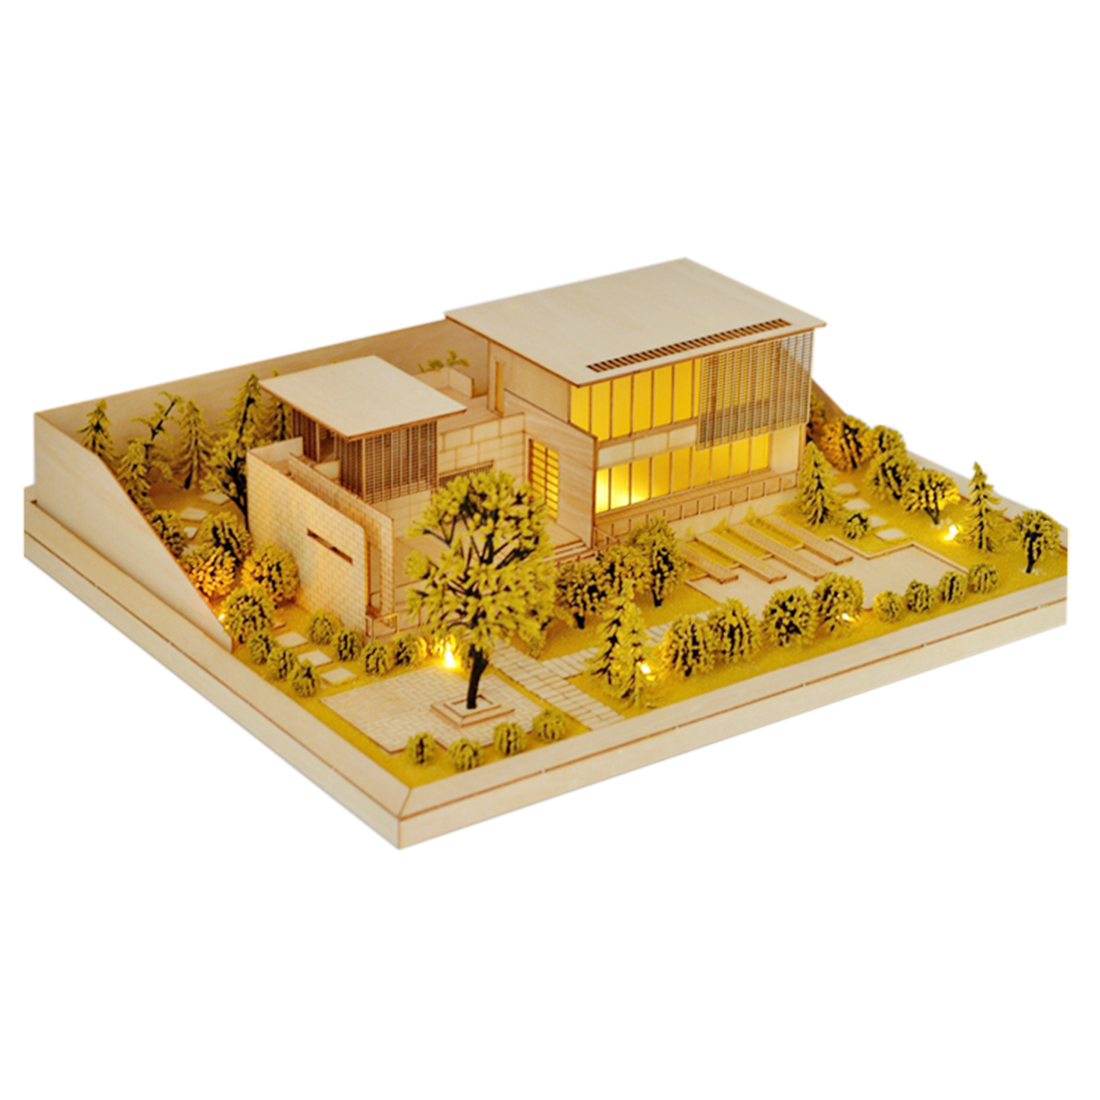 Hot Sale DIY Villa Model Kit Sand Table Architecture Assembly House Kit  With Light Model Educational Toy Gift For Kids Adults